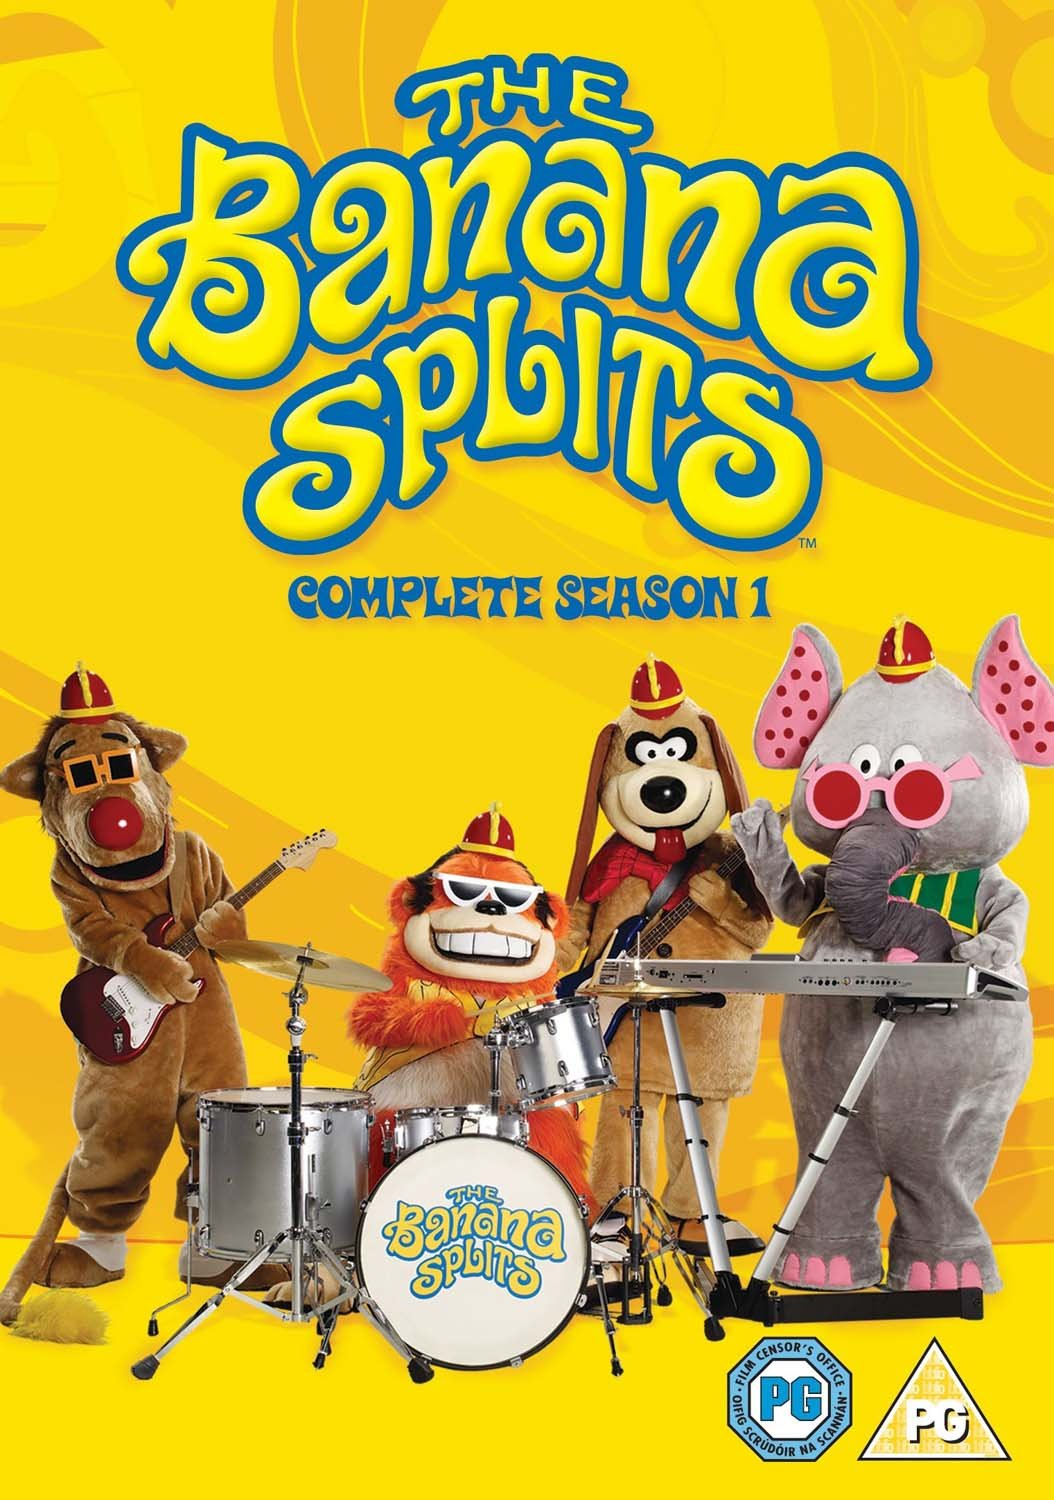 The Banana Splits - Complete Season 1 [DVD] [2009]: Amazon